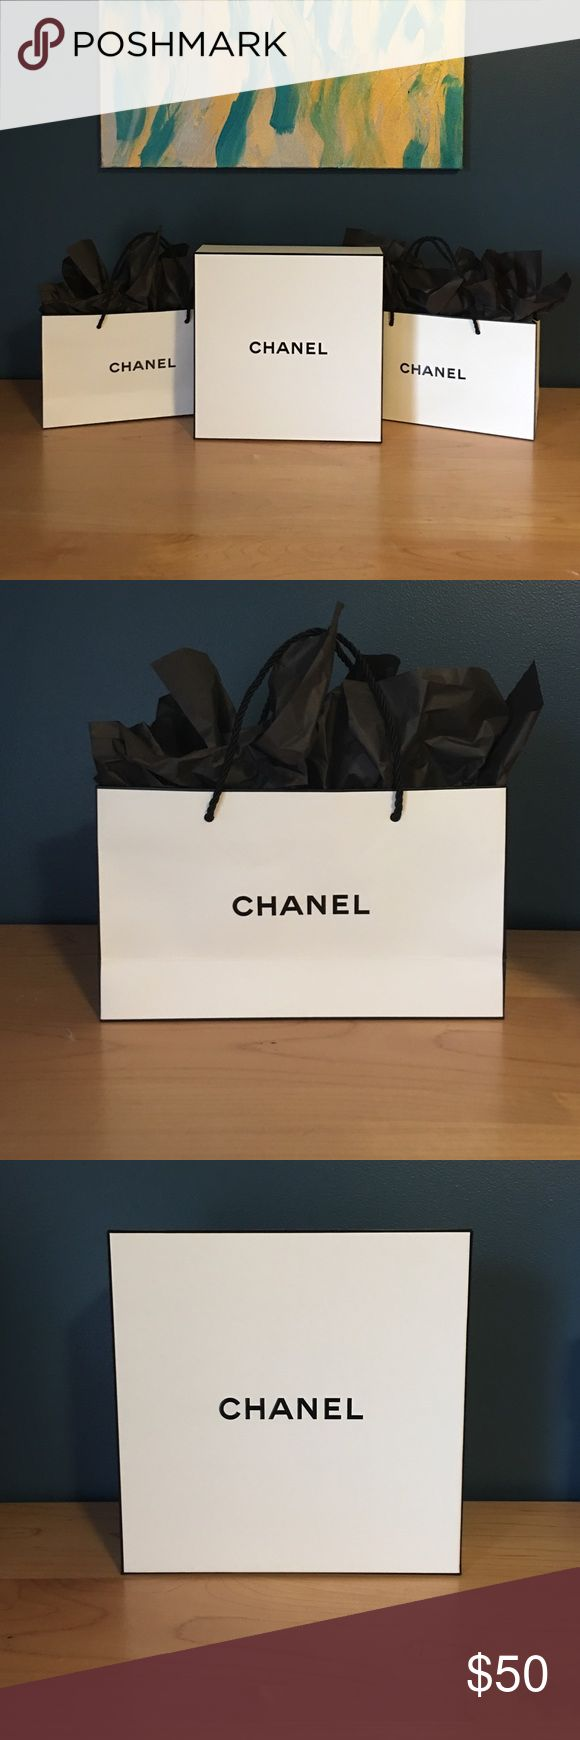 CHANEL Bags + Boxes Two small CHANEL shopping bags with black tissue paper and one medium CHANEL box. CHANEL Bags